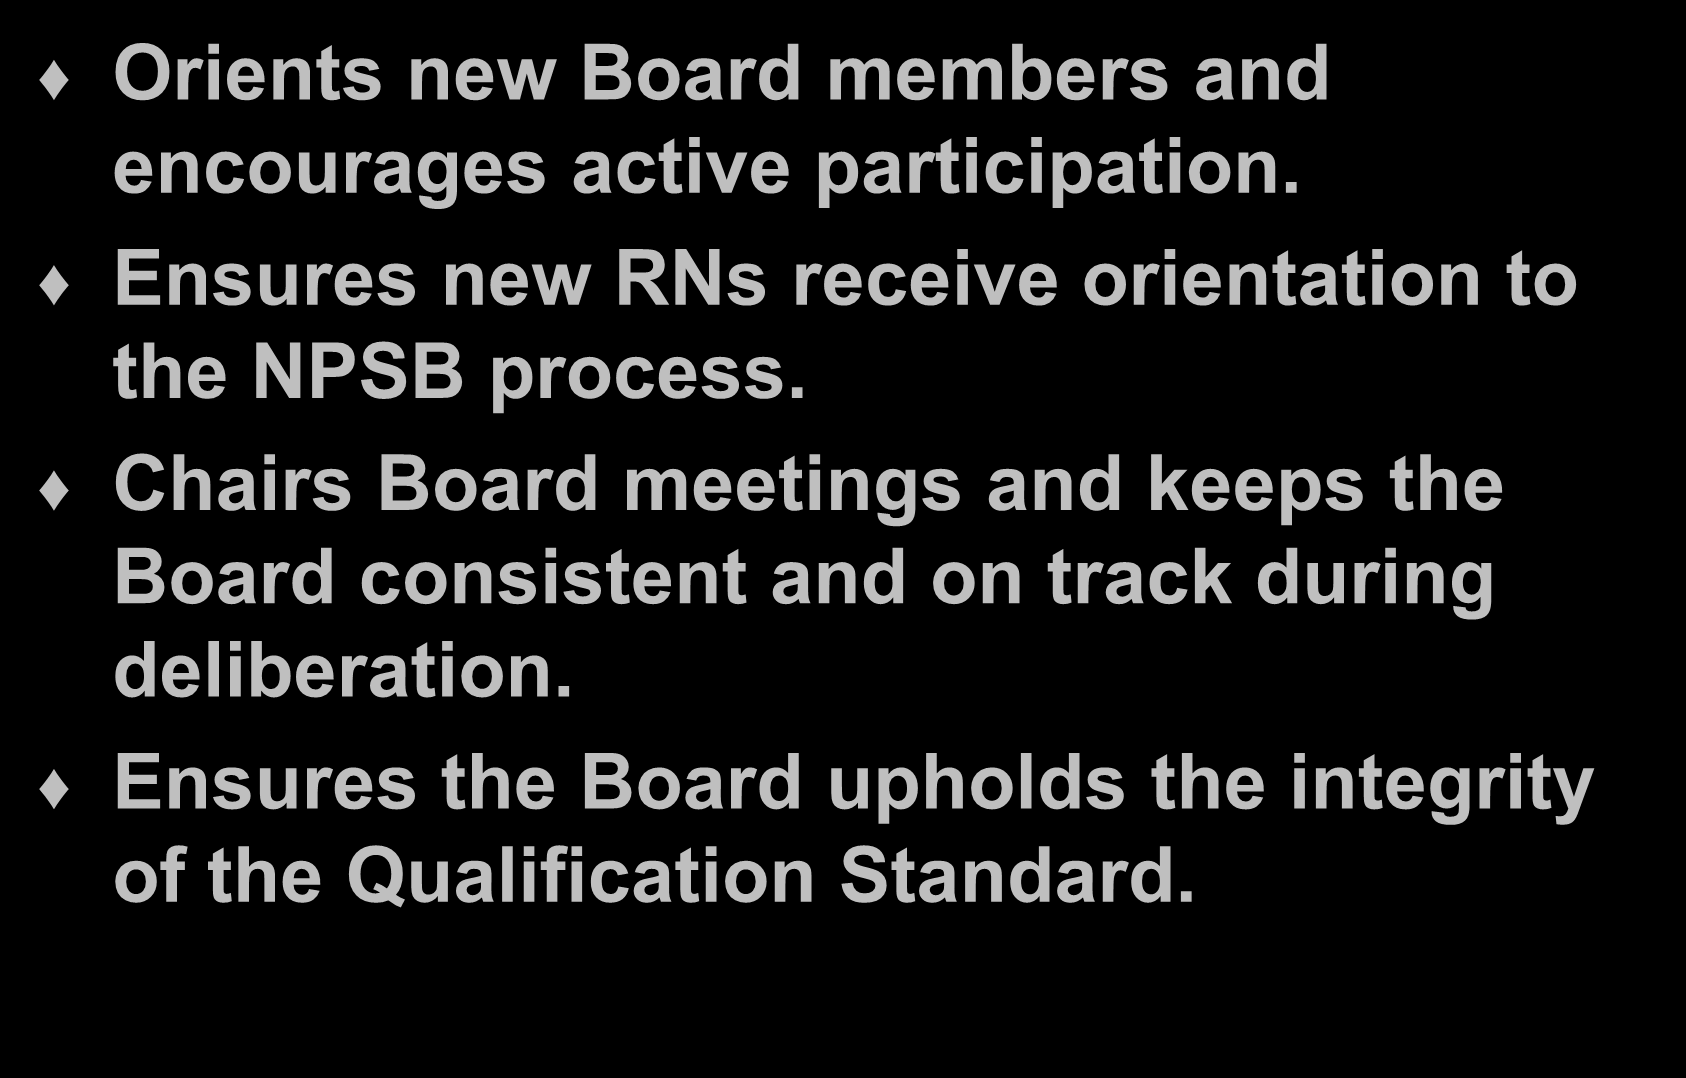 Responsibilities / NPSB Chairperson Orients new Board members and encourages active participation. Ensures new RNs receive orientation to the NPSB process.